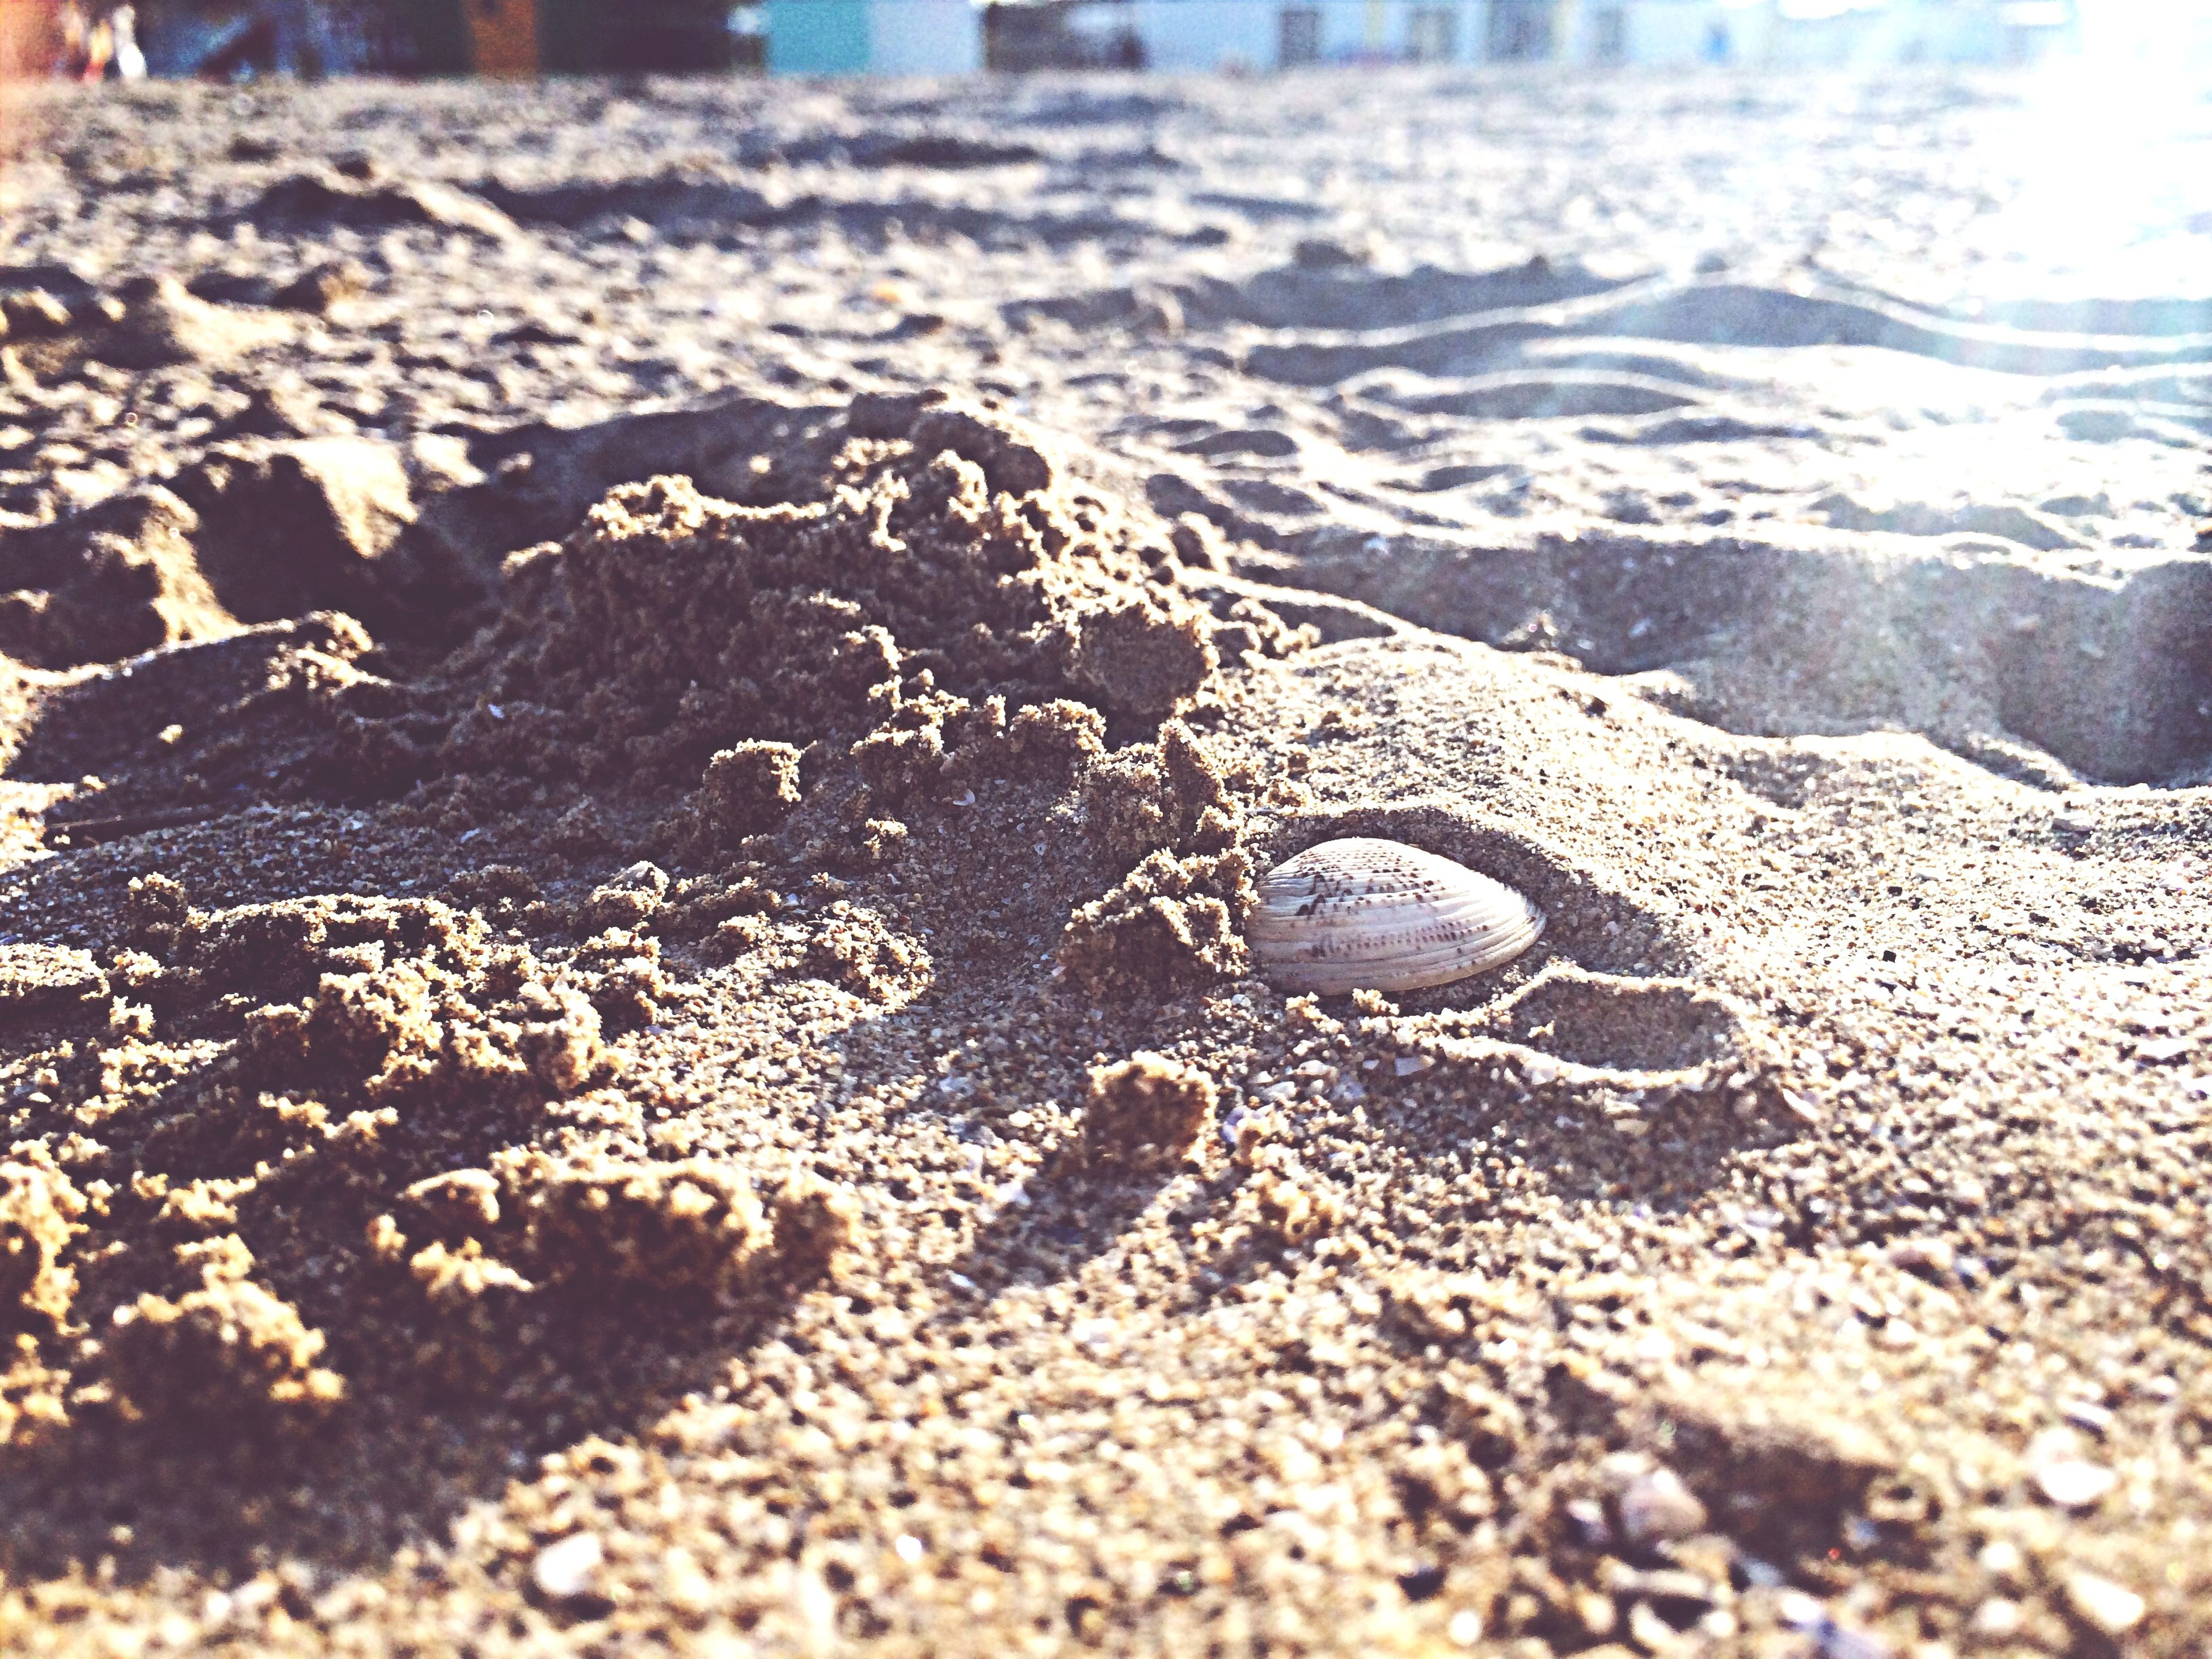 beach, sand, water, shore, sea, wet, nature, surface level, pebble, close-up, stone - object, selective focus, tranquility, day, outdoors, sunlight, seashell, footprint, surf, no people